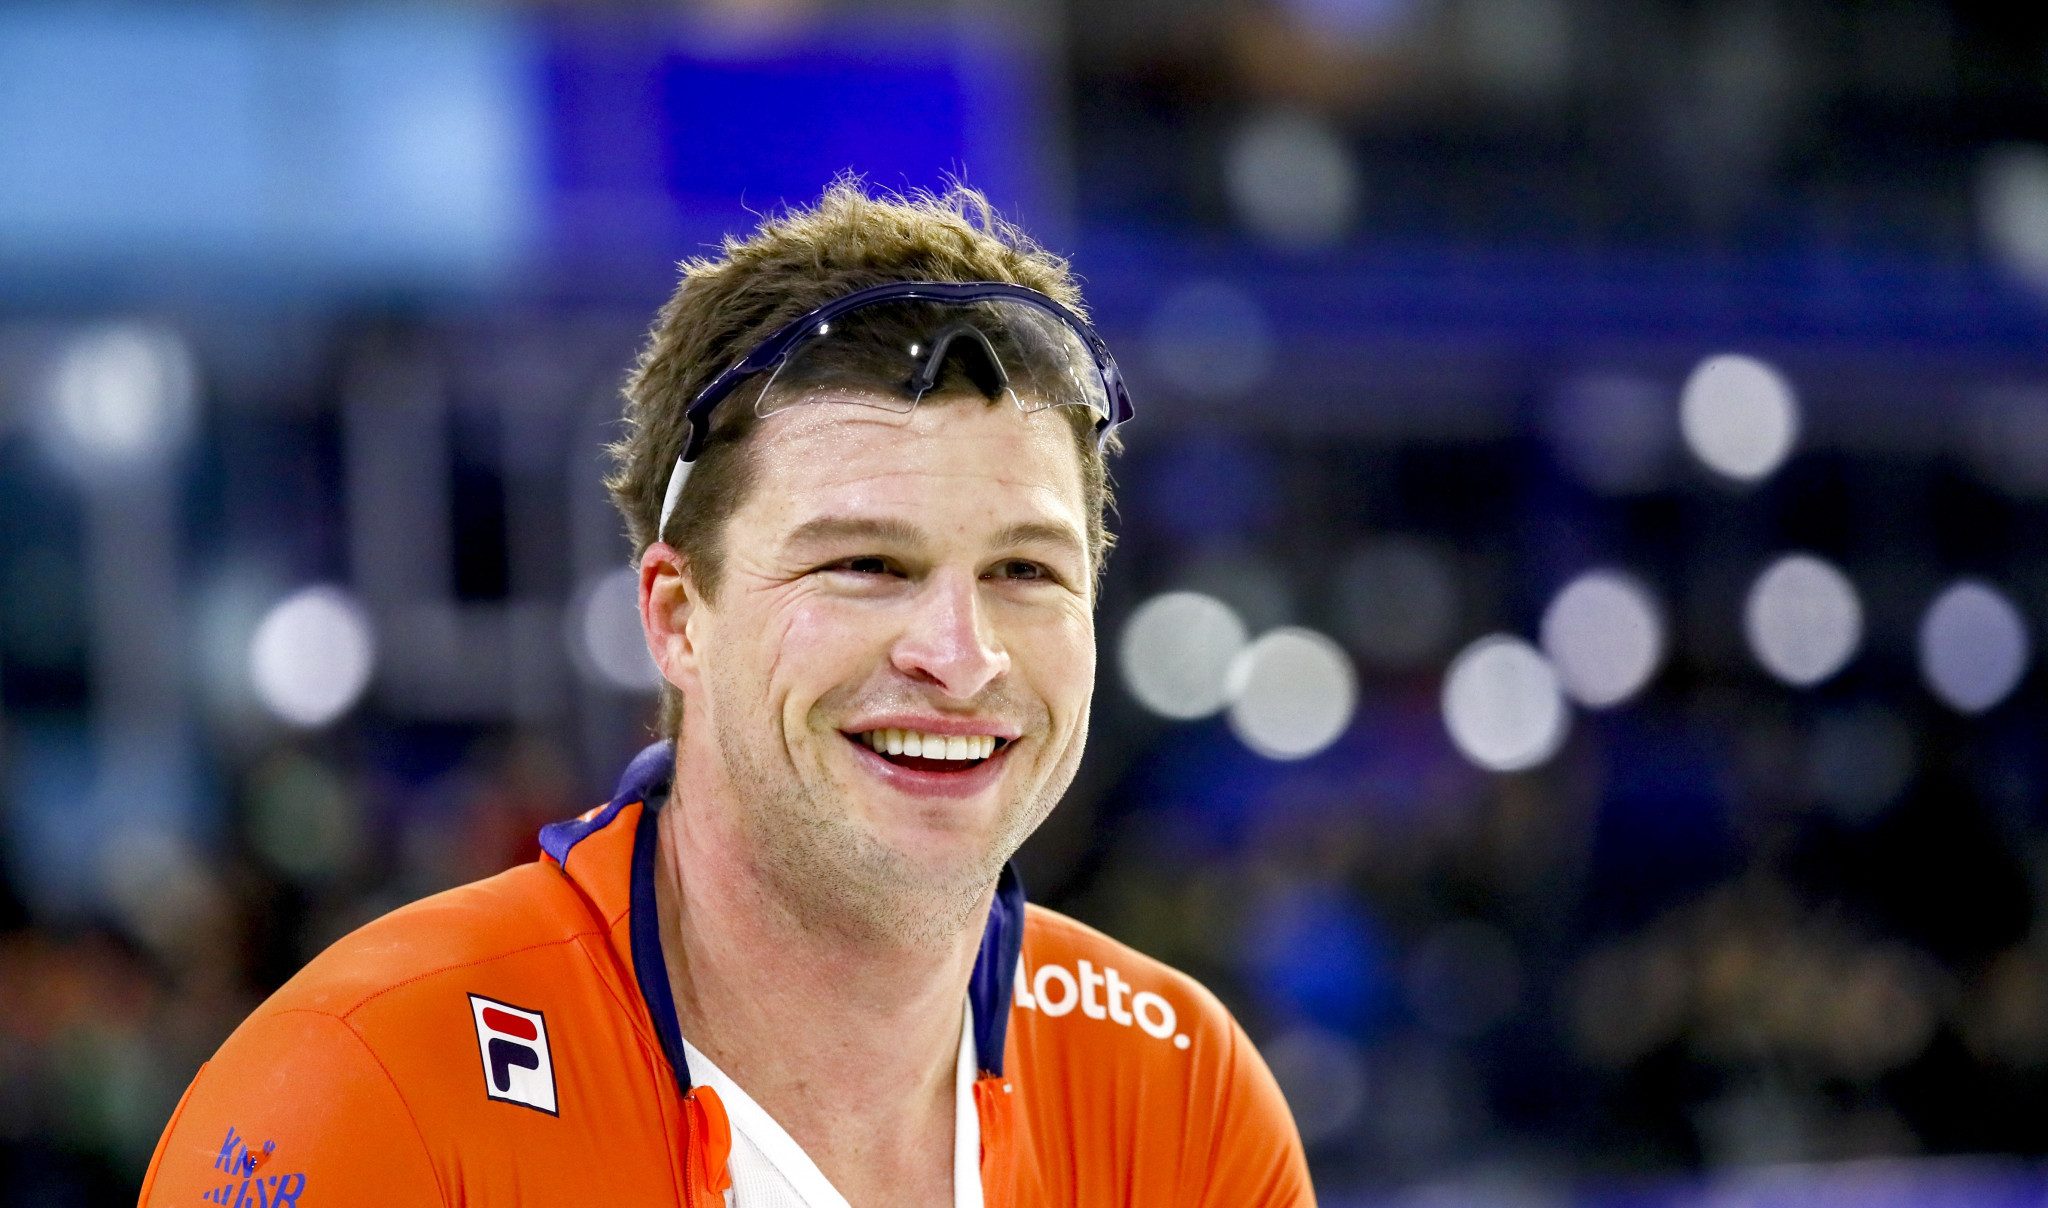 Sven Kramer will expect to triumph in the men's 5000m tomorrow ©Getty Images